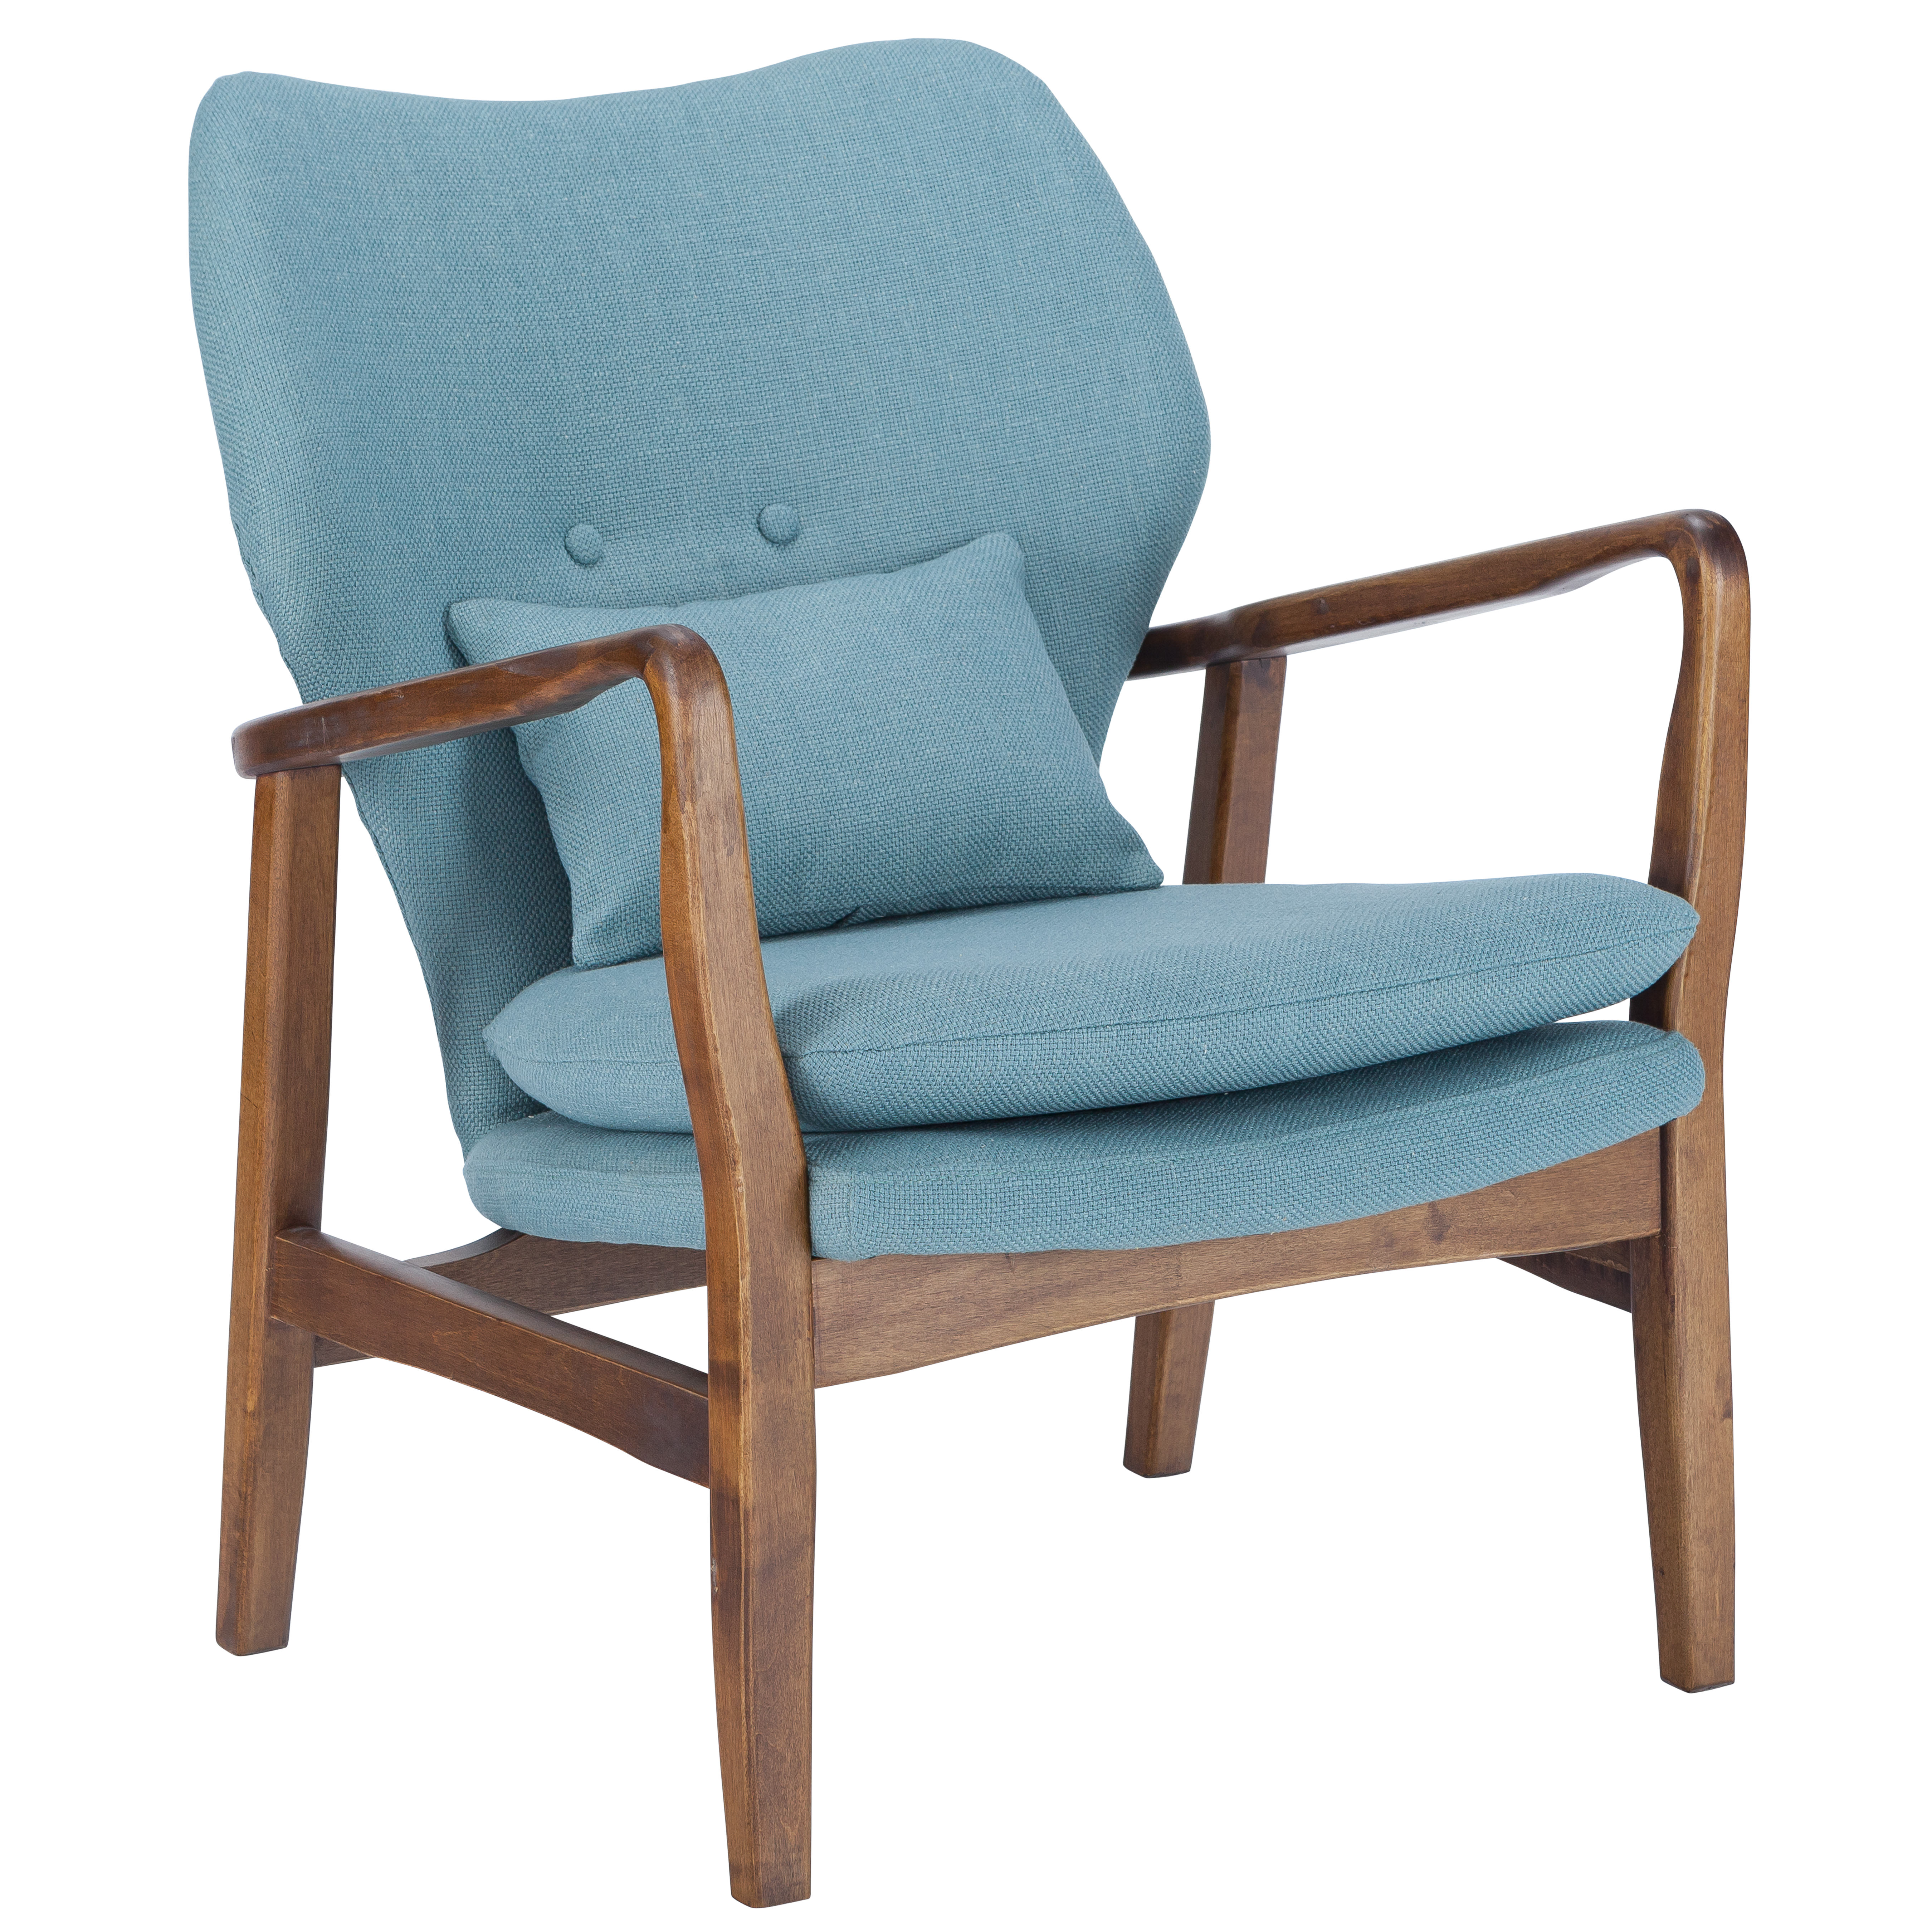 Poly and Bark Atreya Chair with Walnut wood in Beige